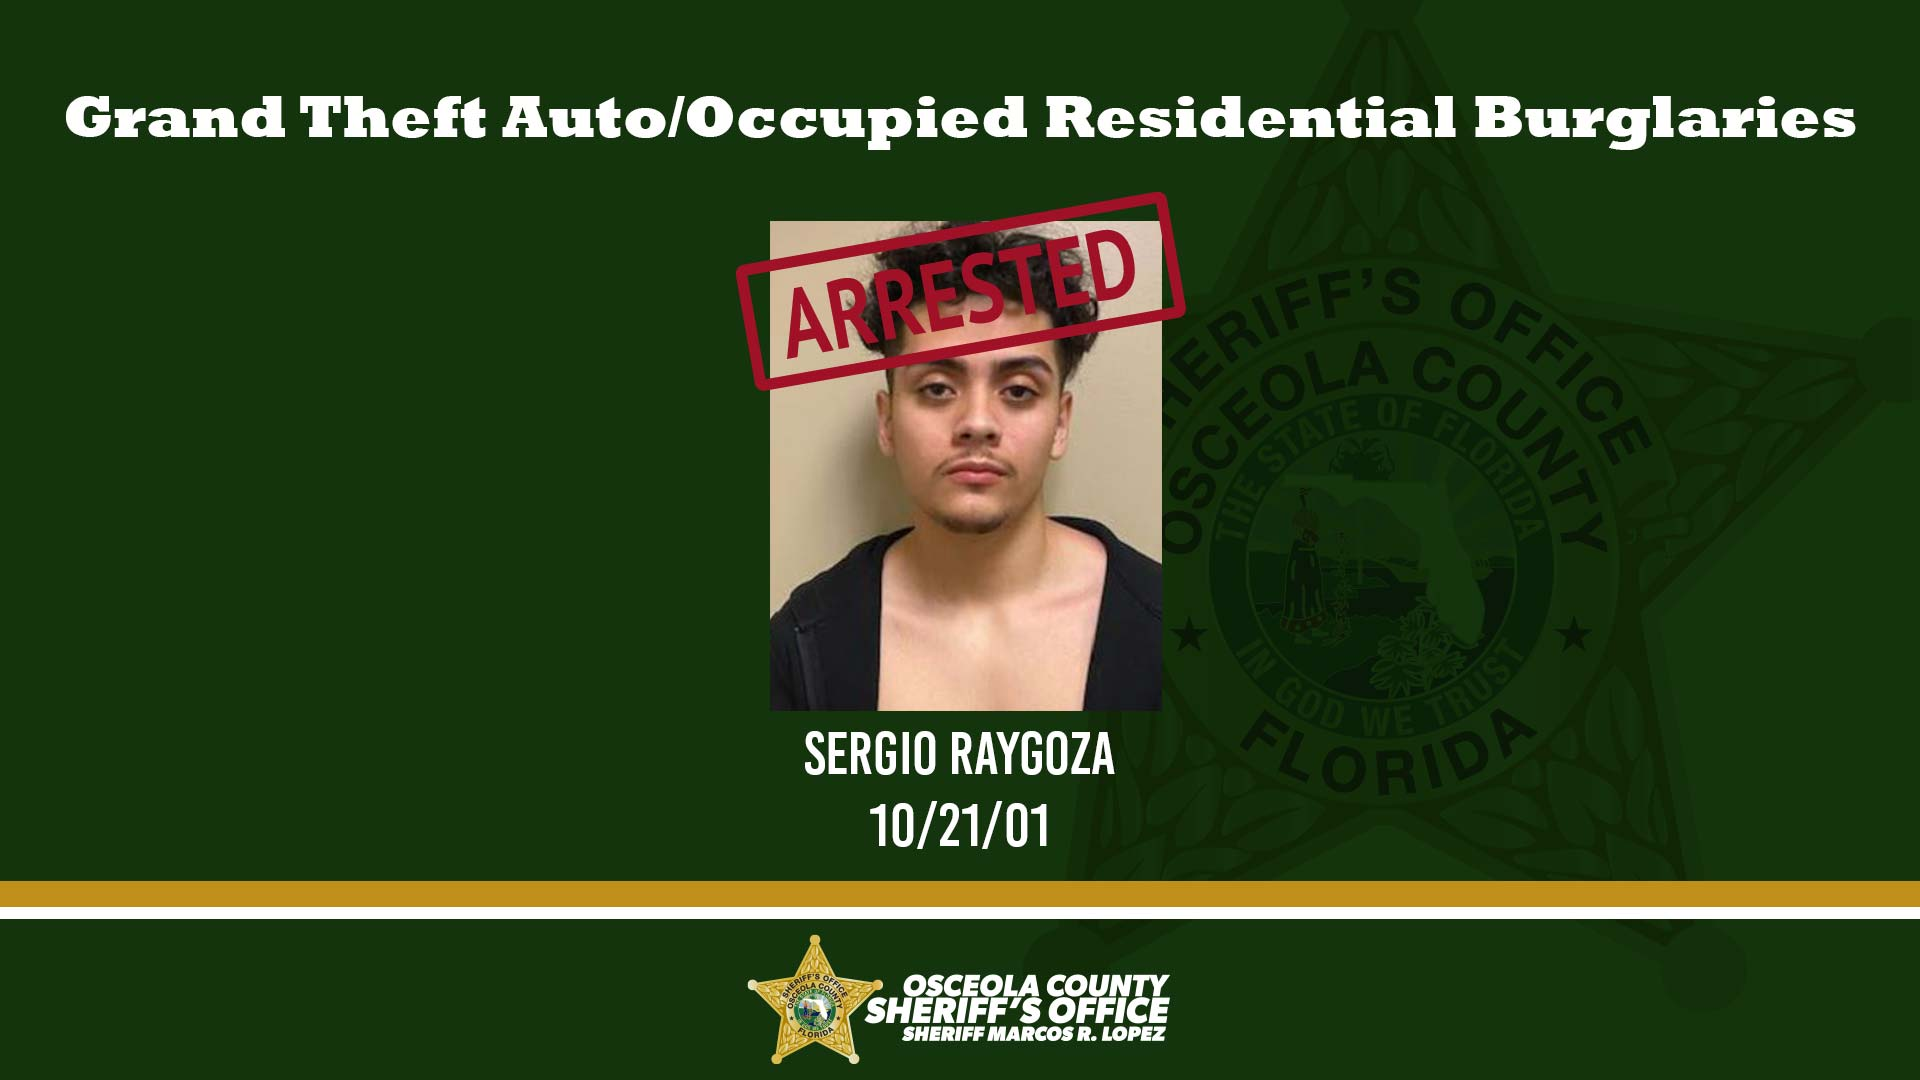 Grand Theft Auto/Occupied Residential Burglaries